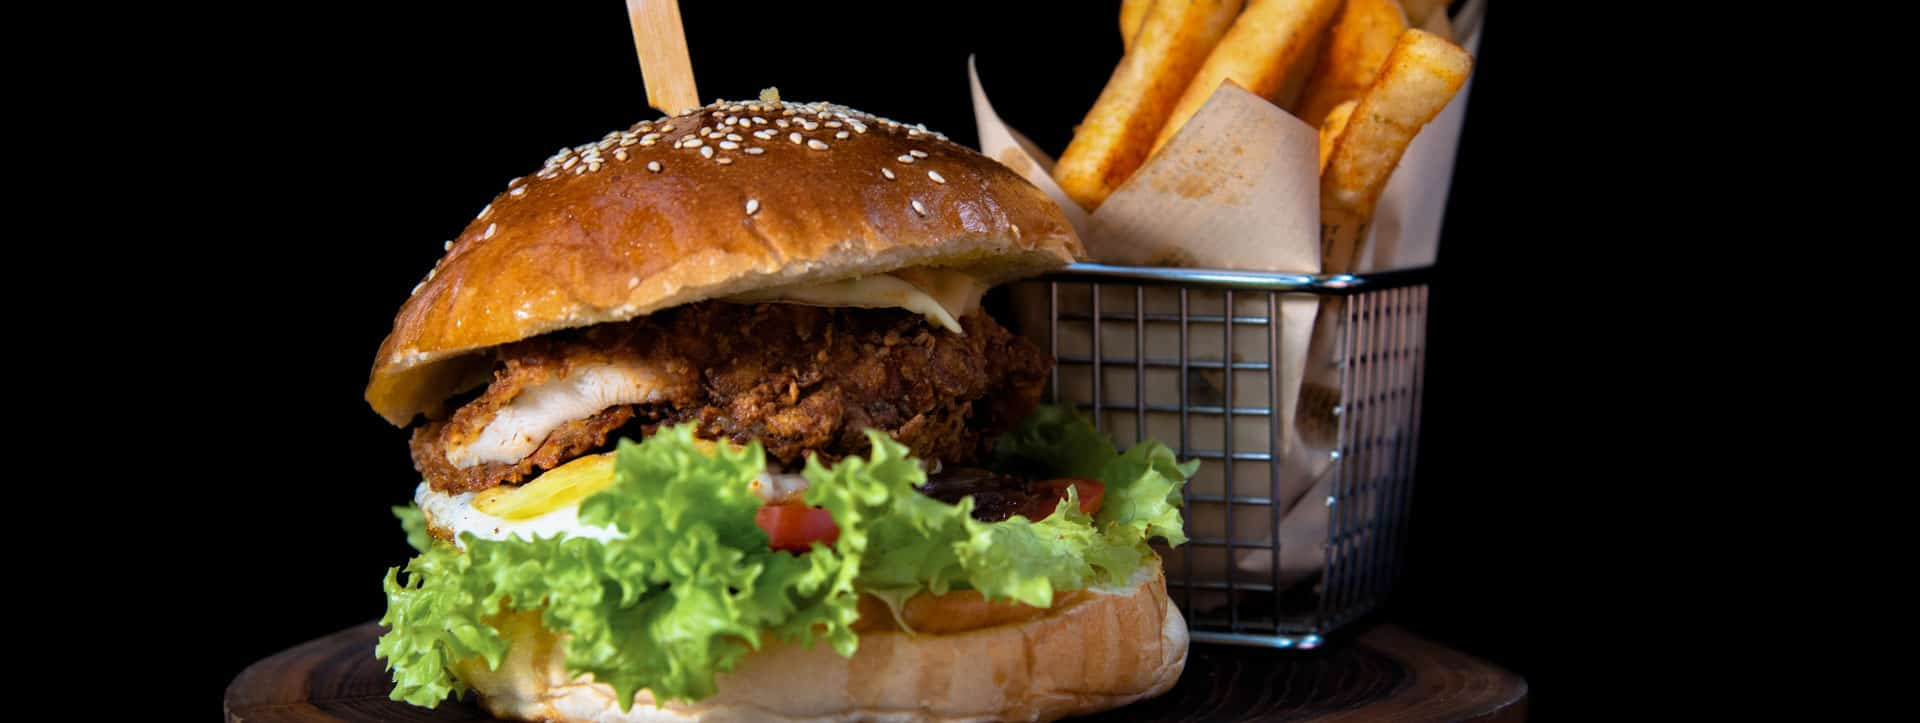 cheat-meal-gras-fittips